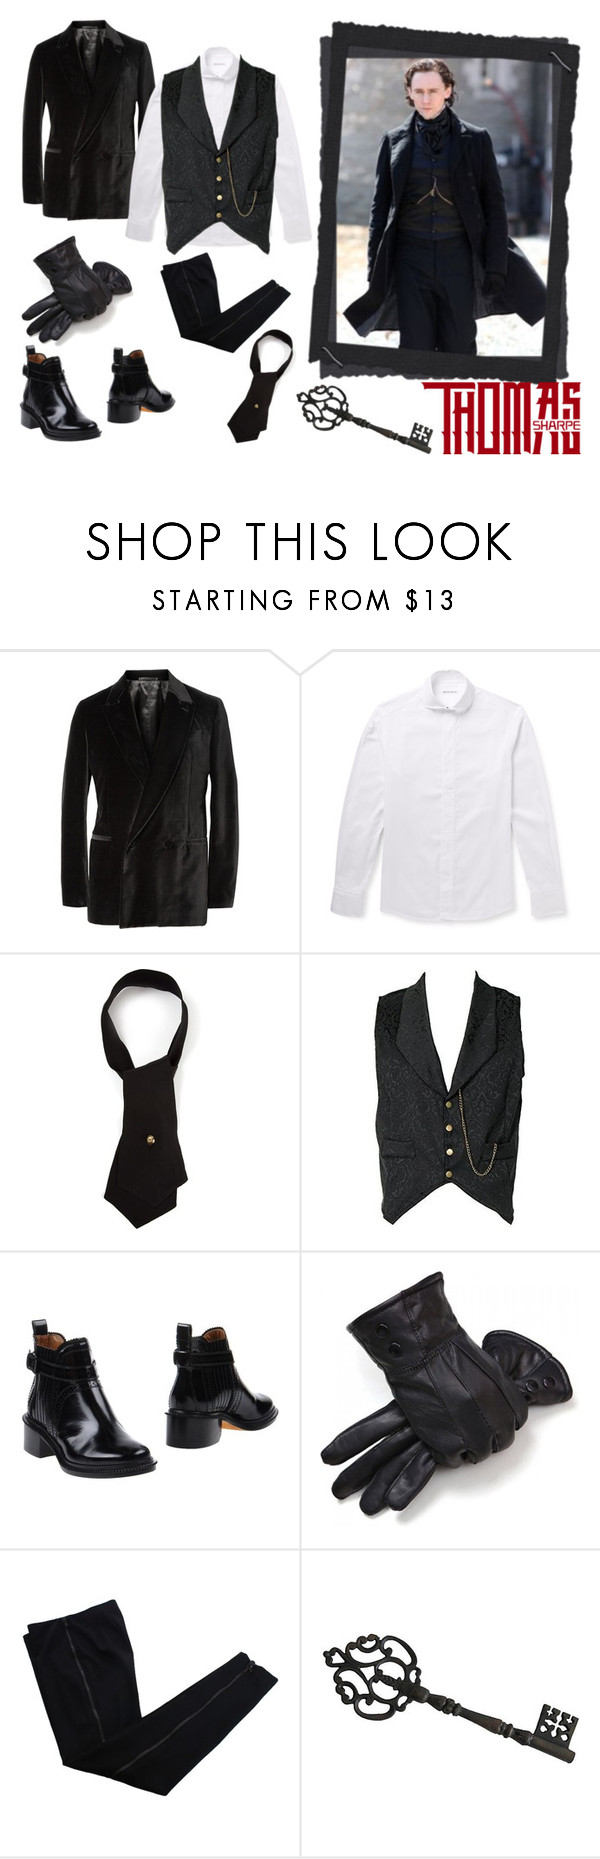 """""""Thomas Sharpe"""" by smile-2528 ❤ liked on Polyvore featuring Berluti, Michael Bastian, Chanel, Givenchy and COSTUME NATIONAL"""